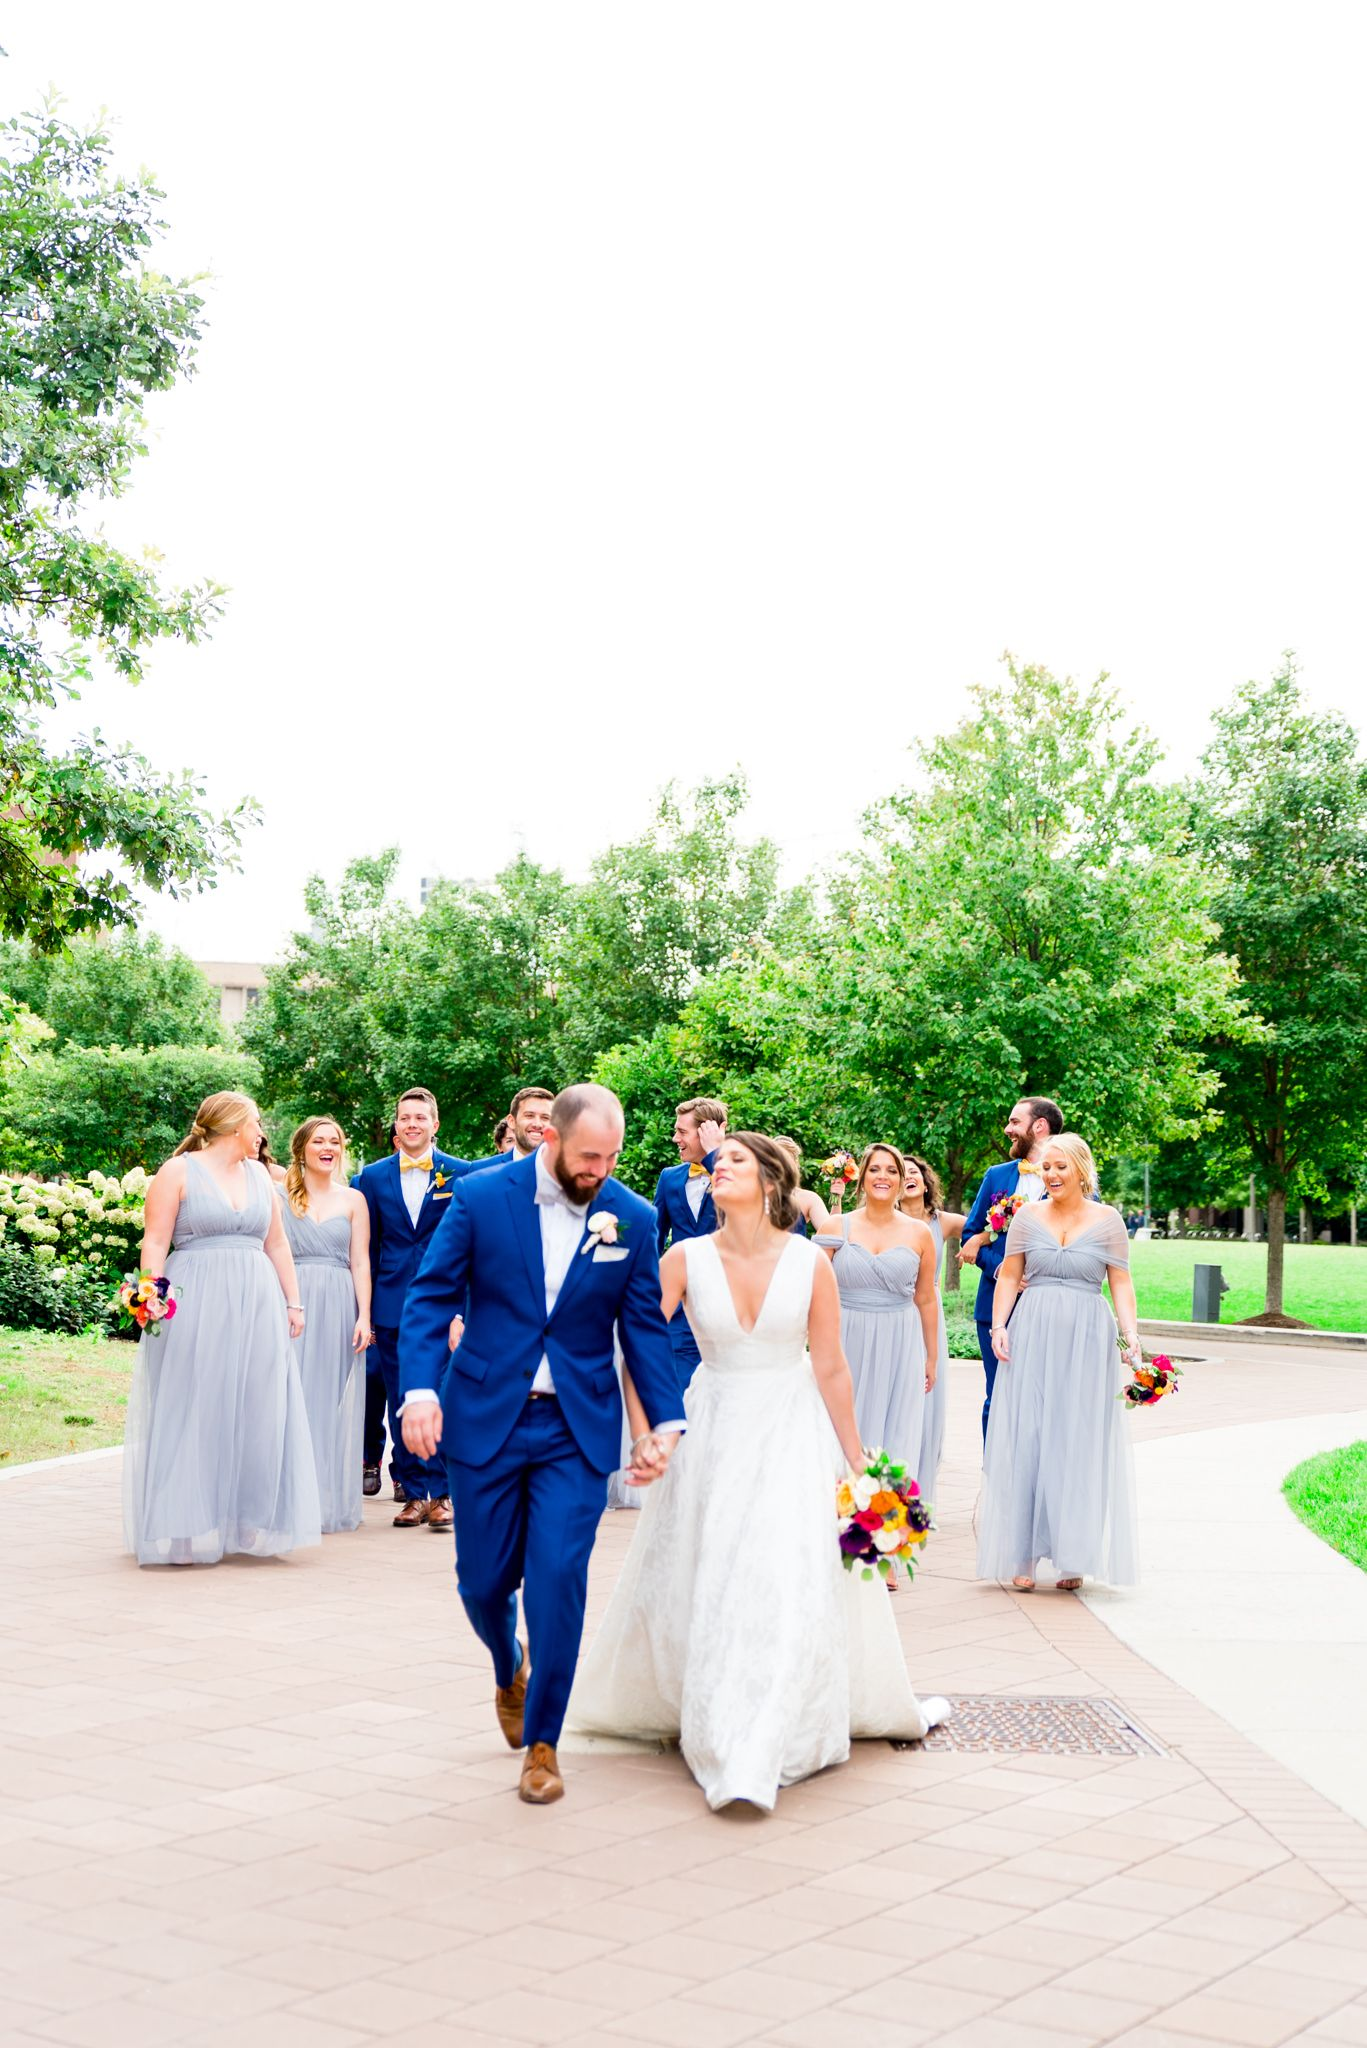 bride and groom walking with bridal party in light blue bridesmaid dresses and navy groomsmen suits at Loyola Chicago